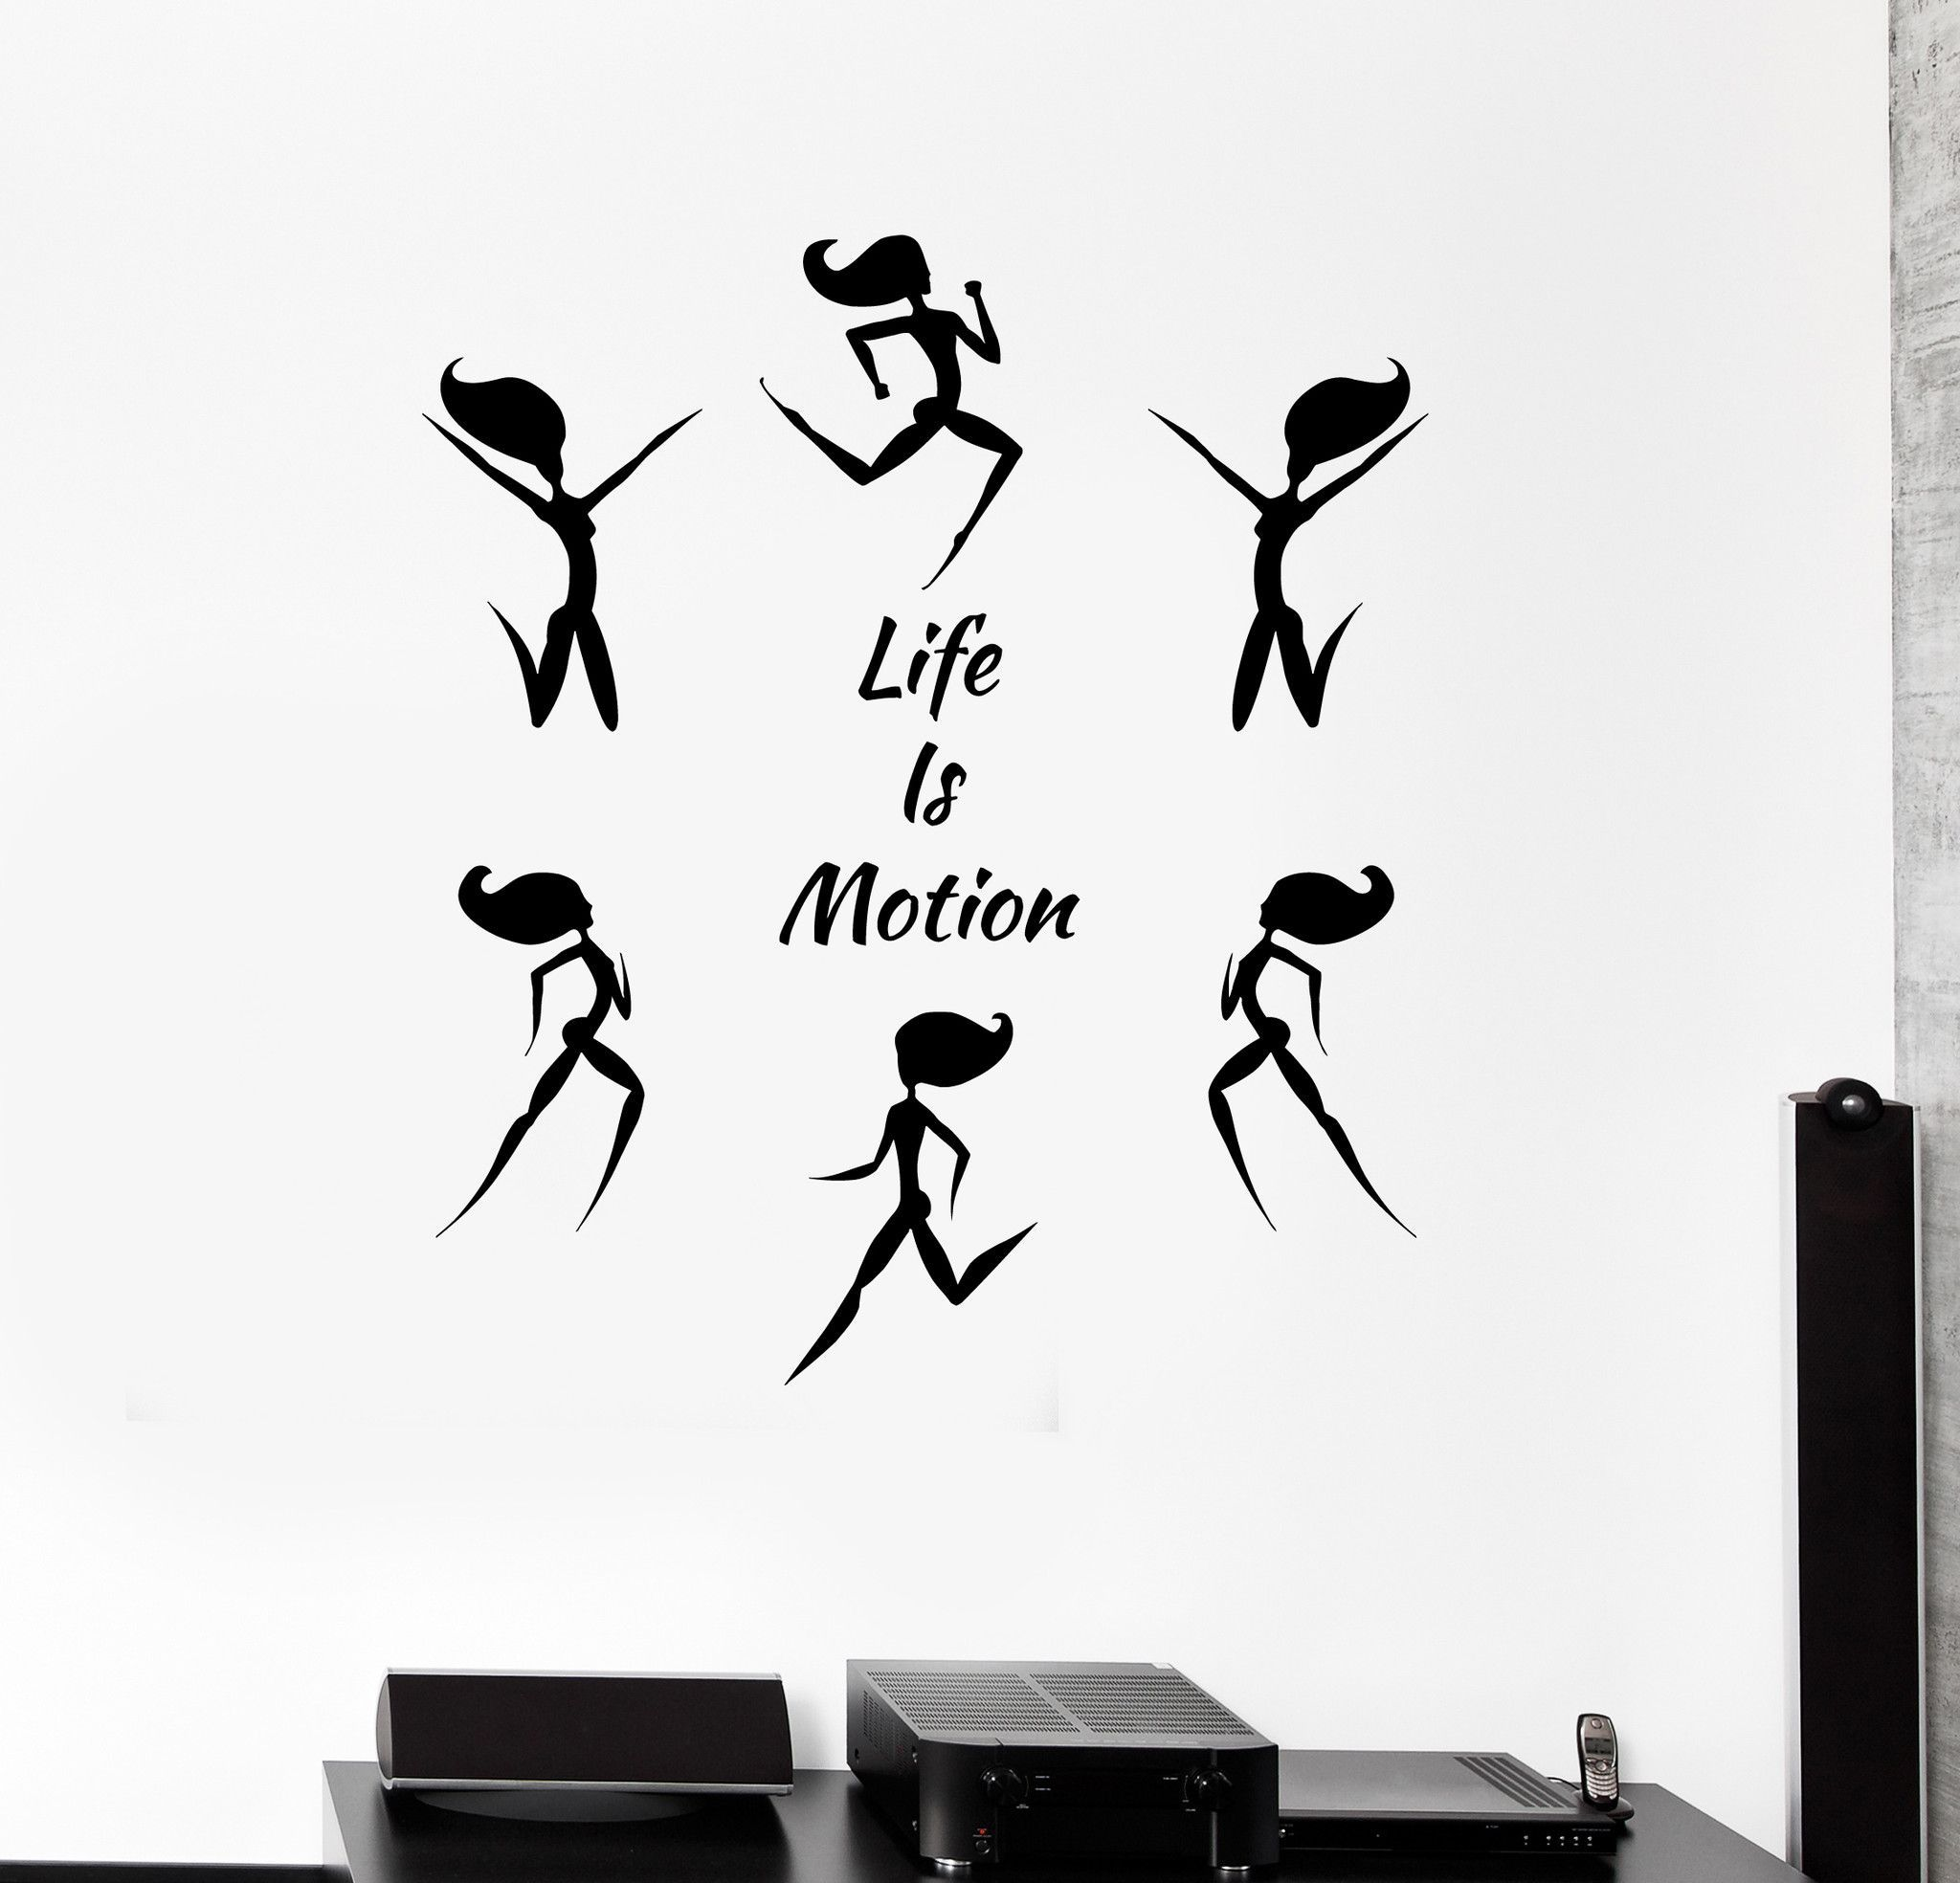 Vinyl Wall Decal Fitness Quote Life is Motion Woman Gym Sports Stickers (ig4584) & Vinyl Wall Decal Fitness Quote Life is Motion Woman Gym Sports ...